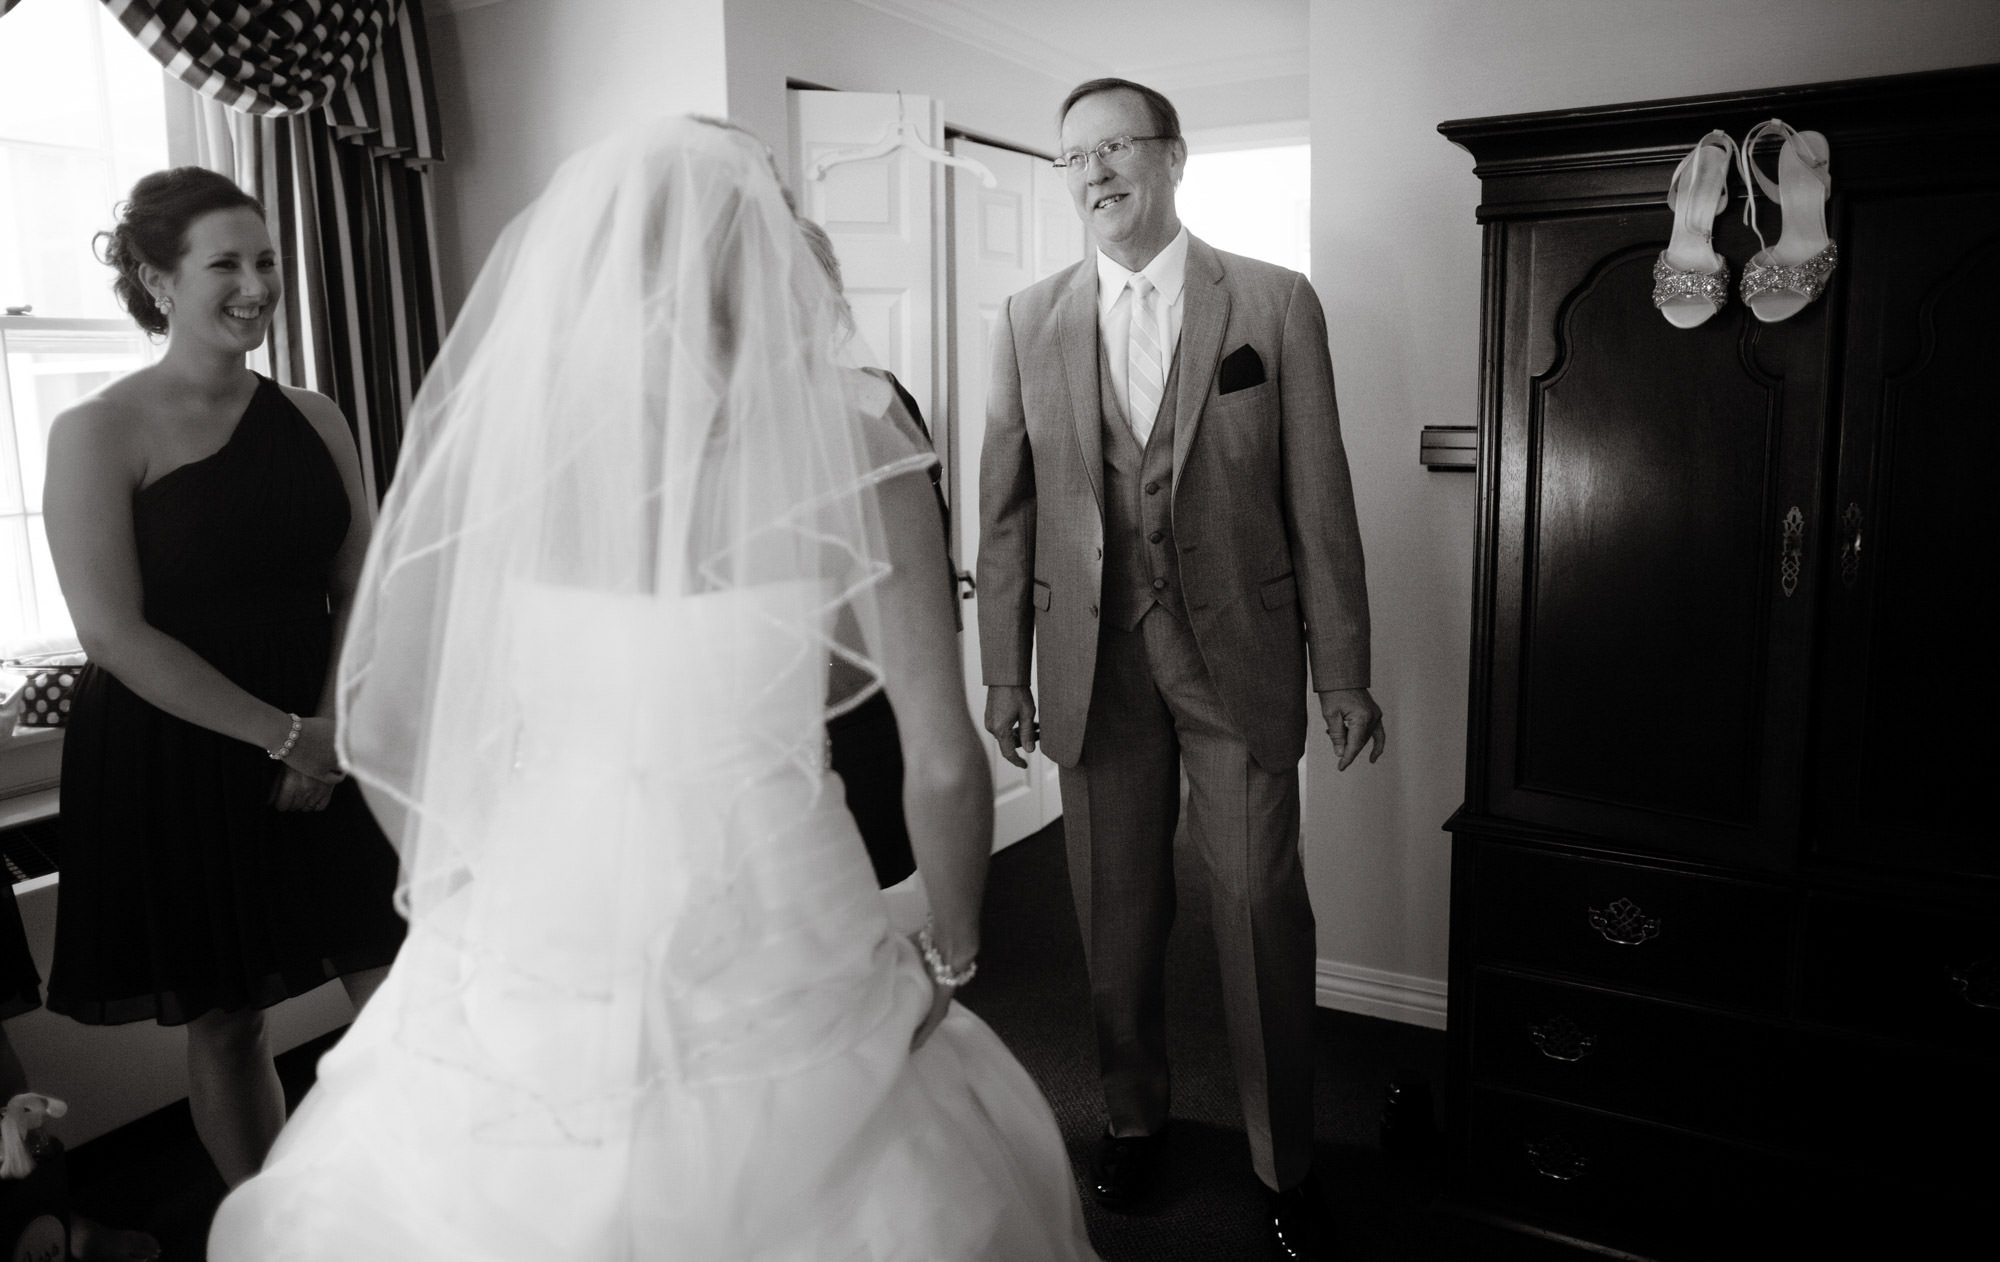 The father of the bride sees his daughter before the ceremony.